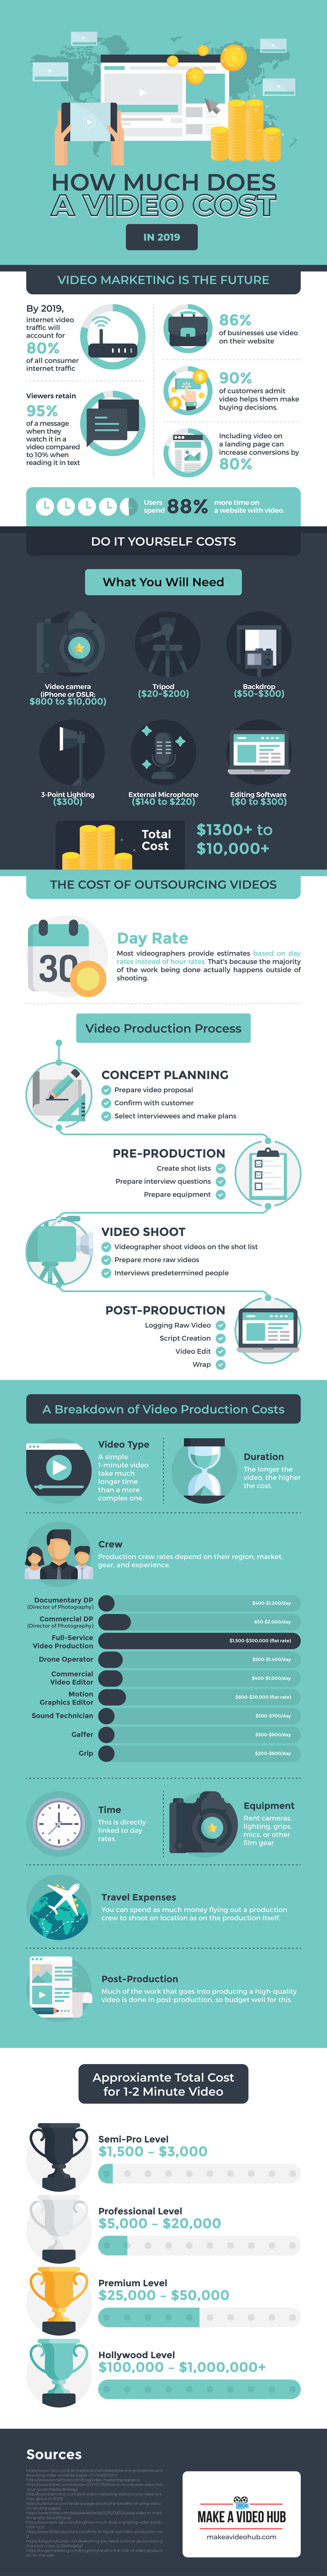 video-production-costs